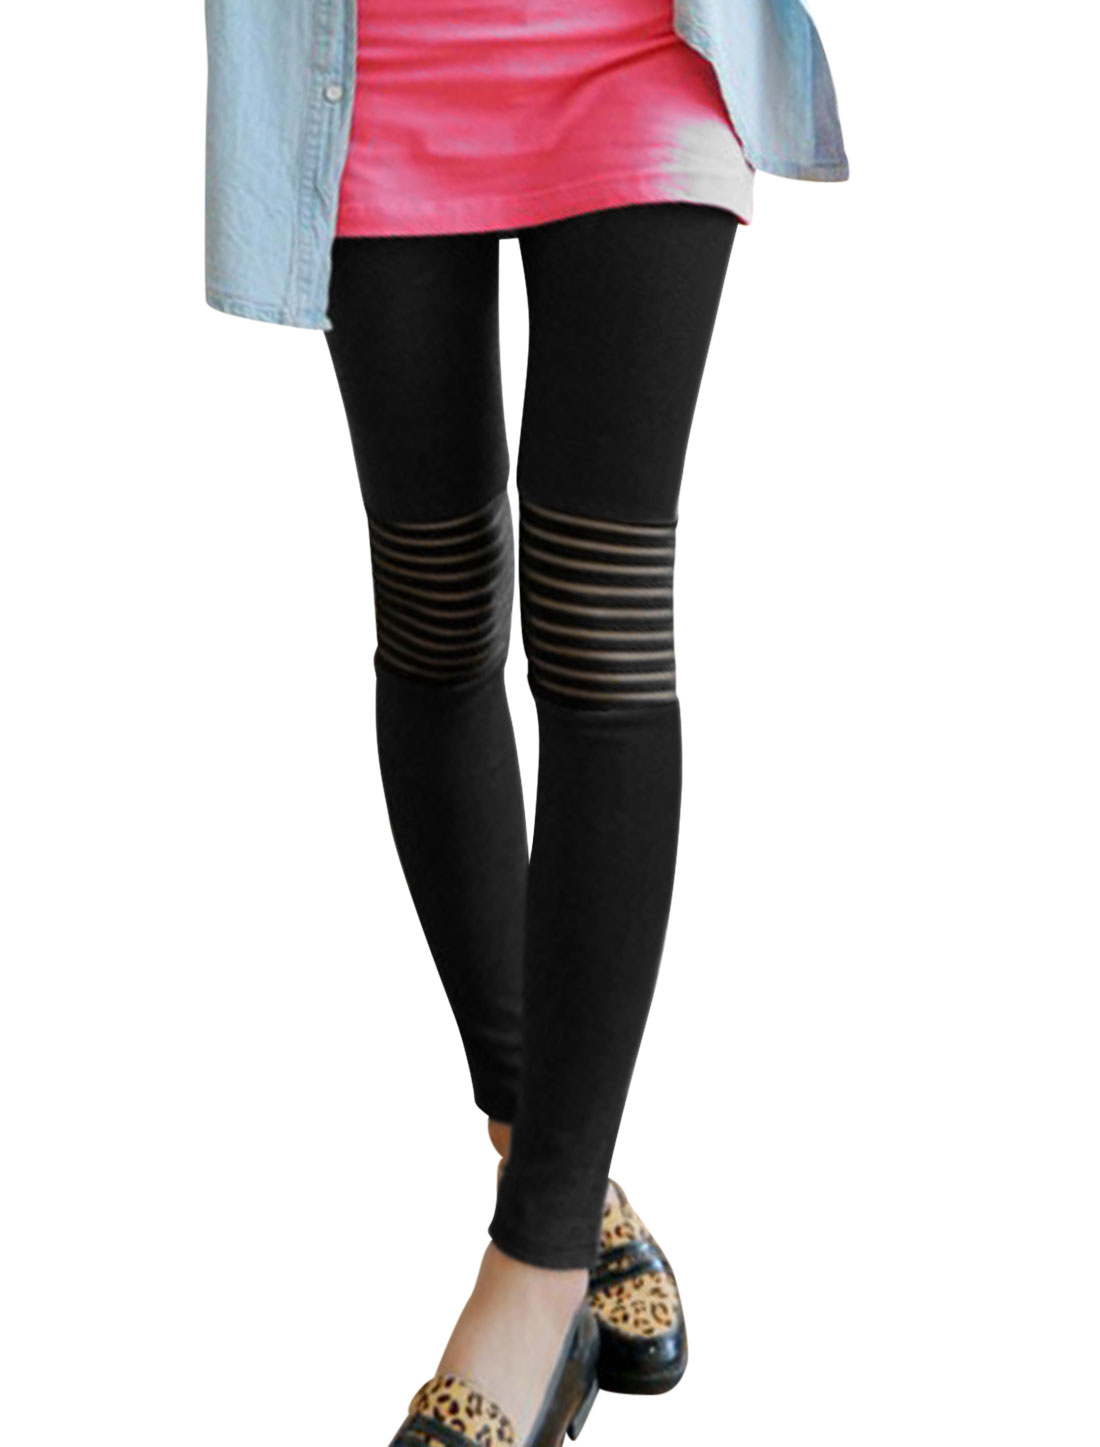 Stretchy Stripes Detail Form-fitting Leisure Leggings for Women Black XS